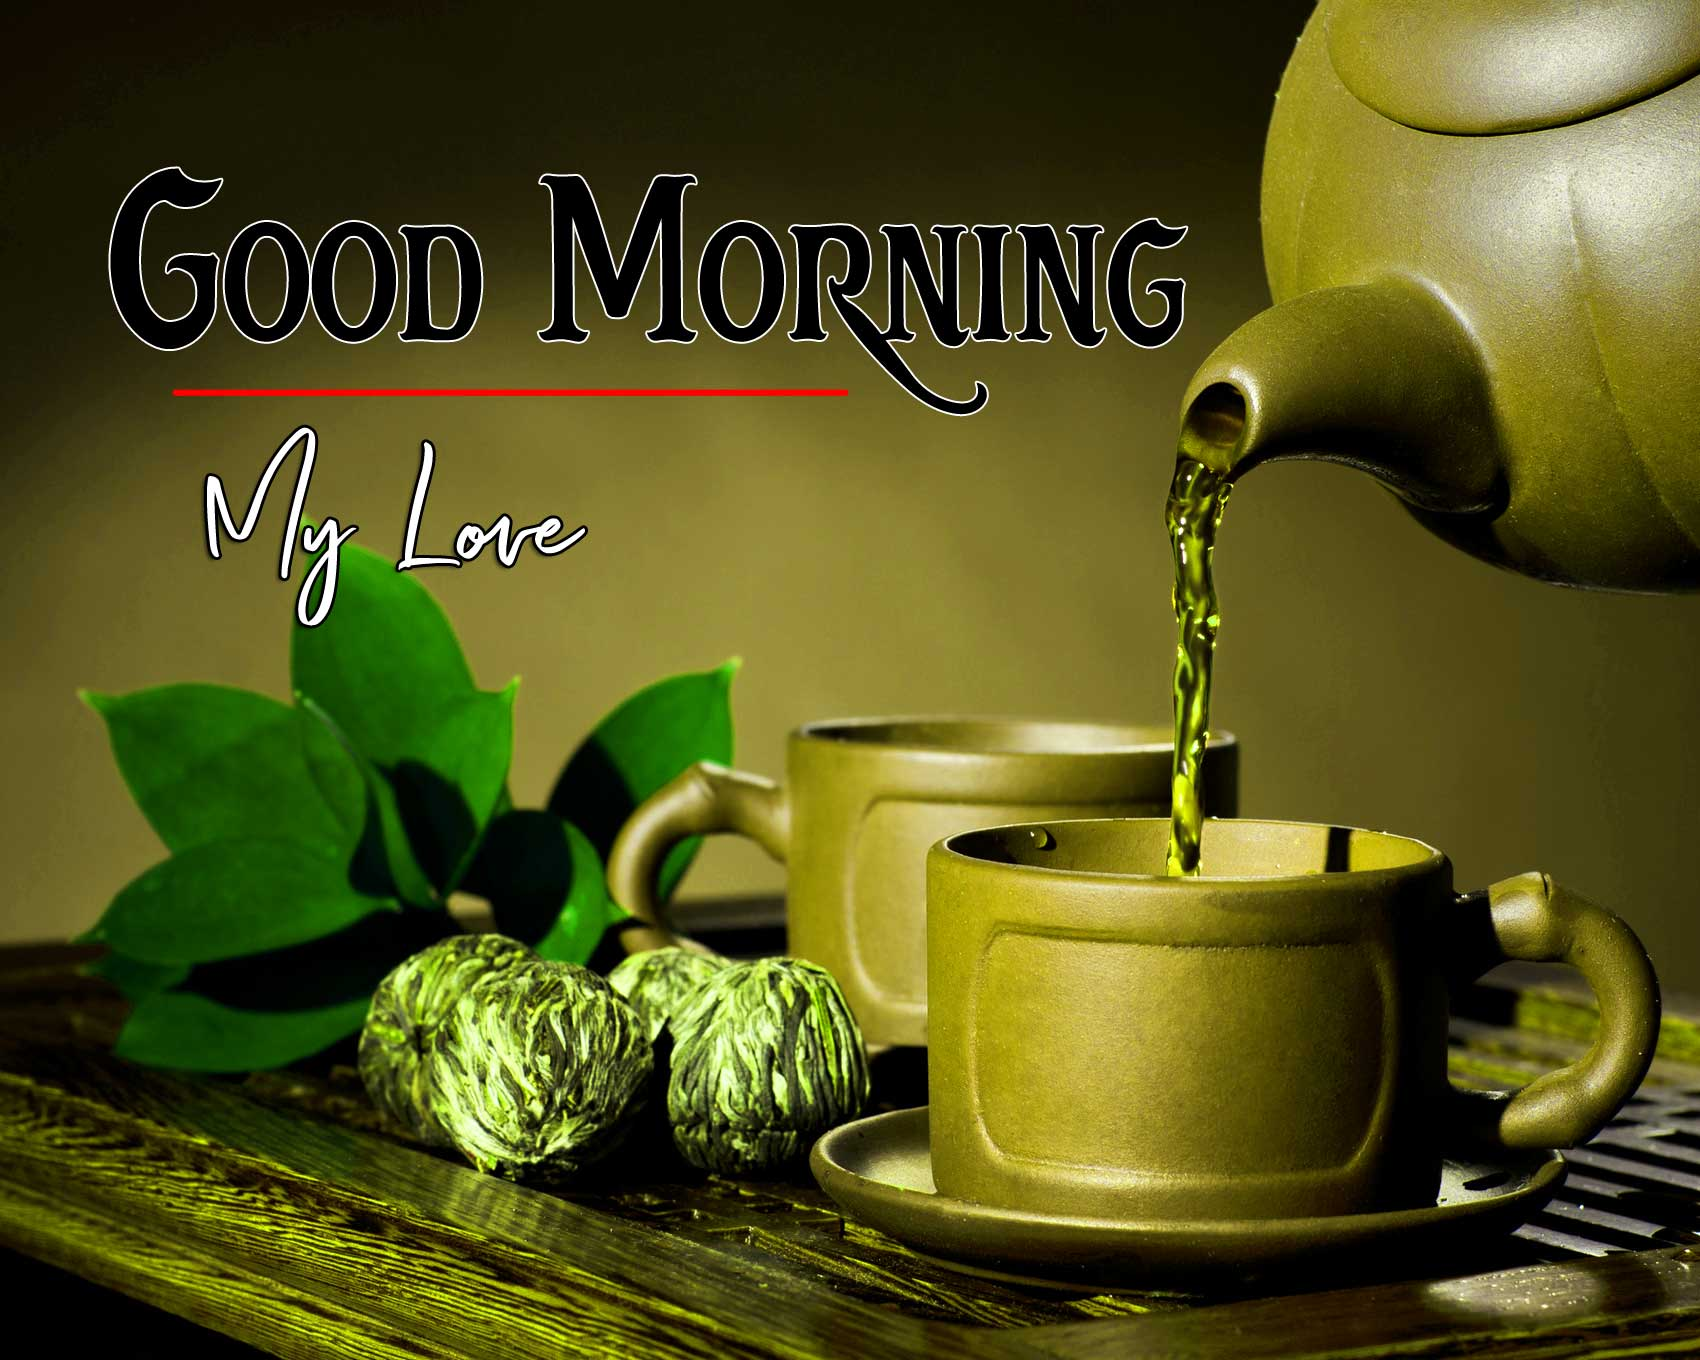 Good Morning Sweetheart Images Images